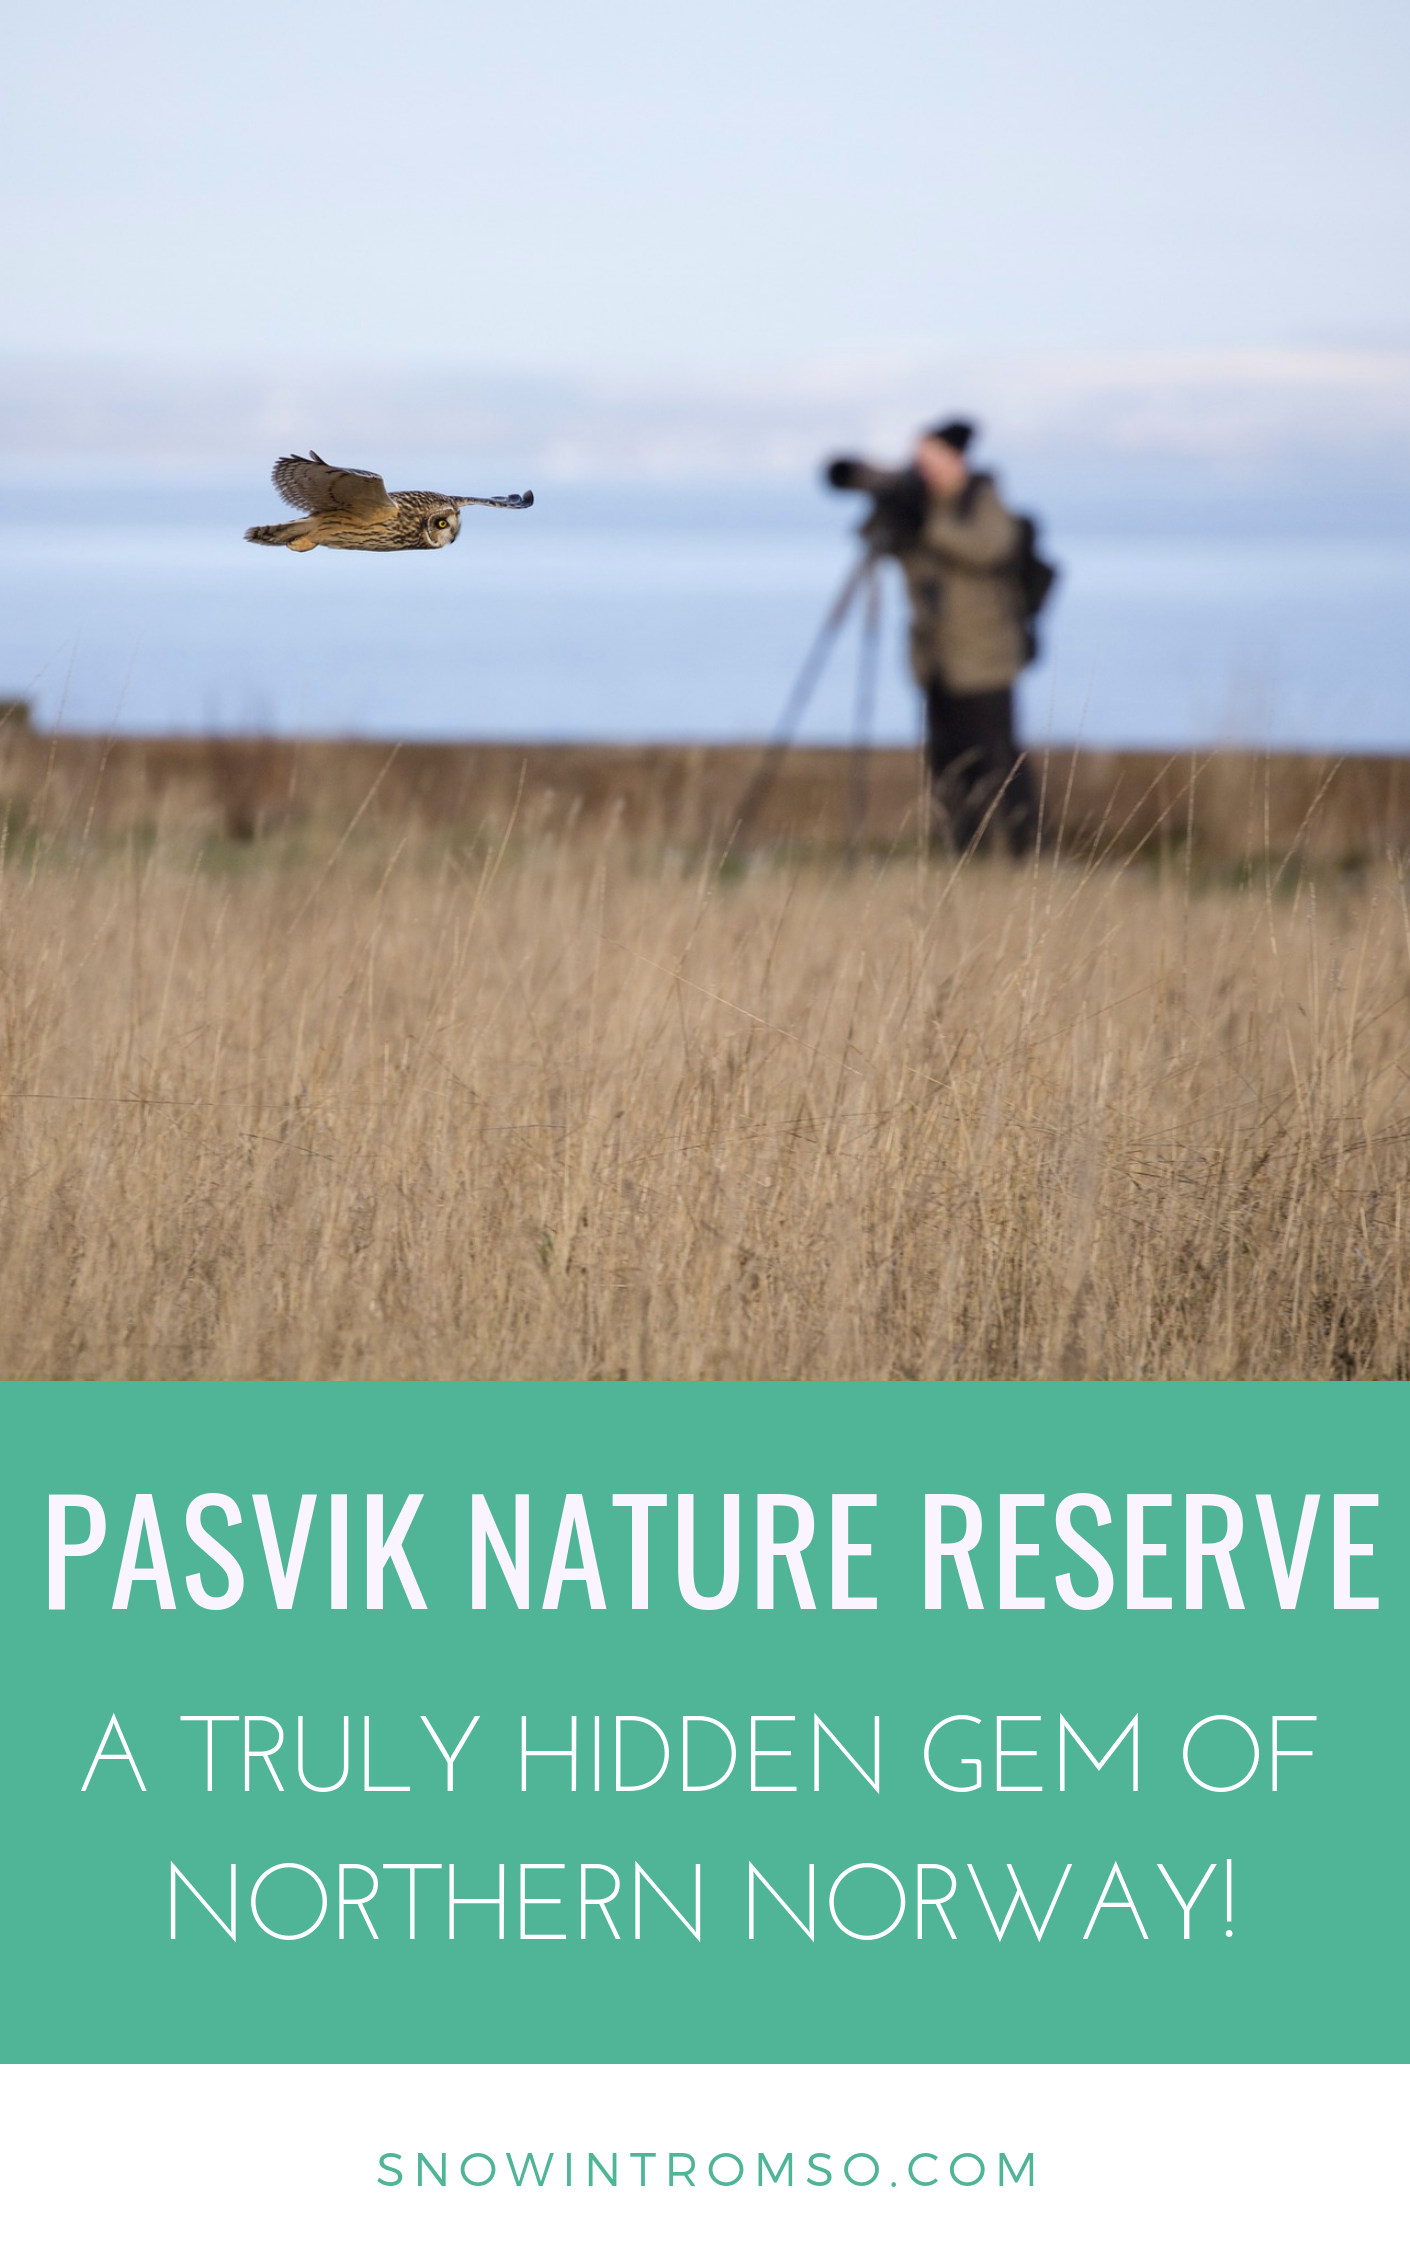 Have you ever heard of Pasvik in eastern Finnmark, Northern Norway? If you're looking for a wilderness vacation - this might be the perfect place!